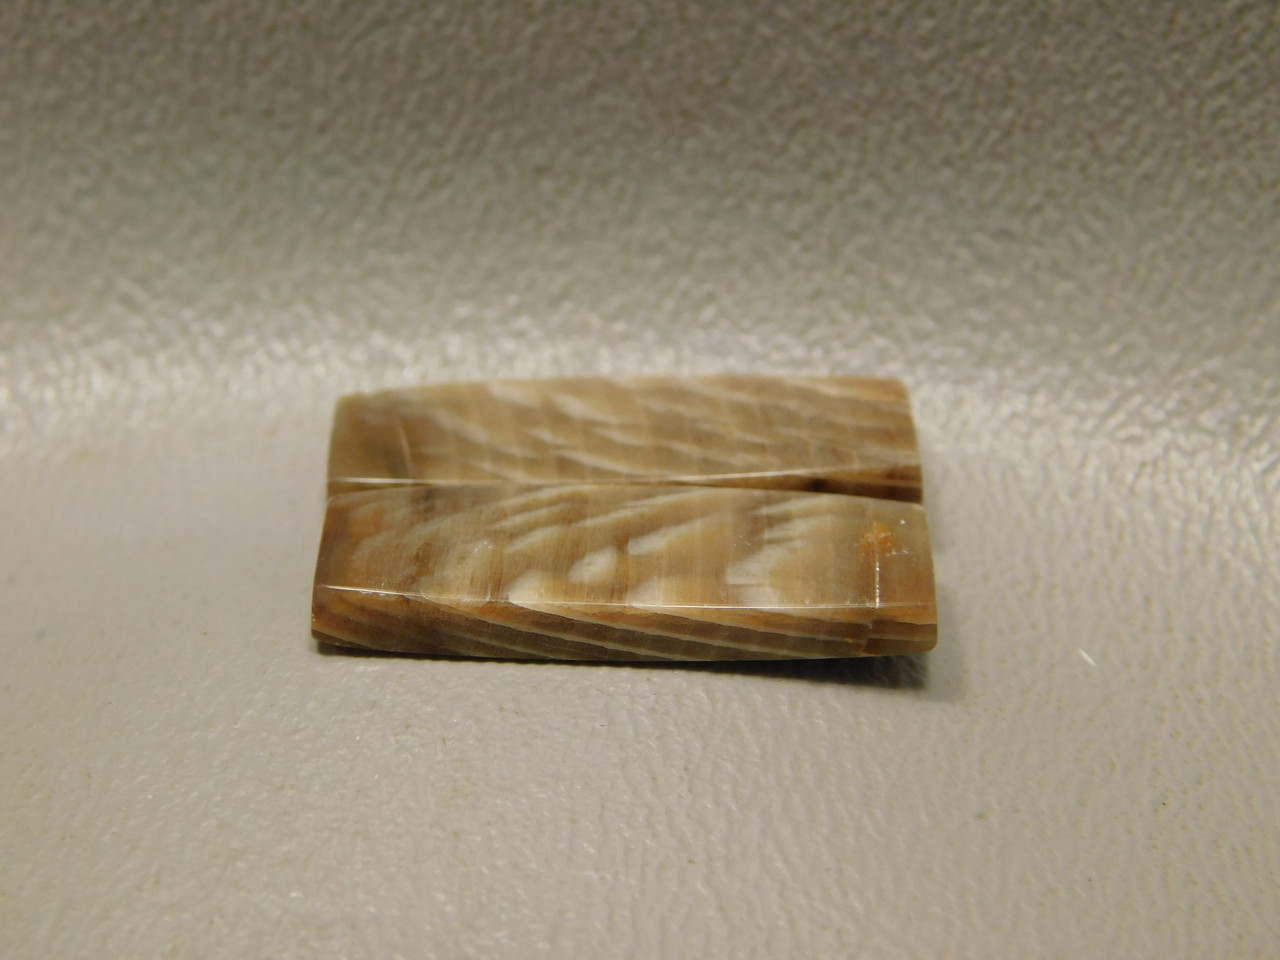 Sycamore Wood Matched Pair Cabochons Bars Jewelry Stones #5